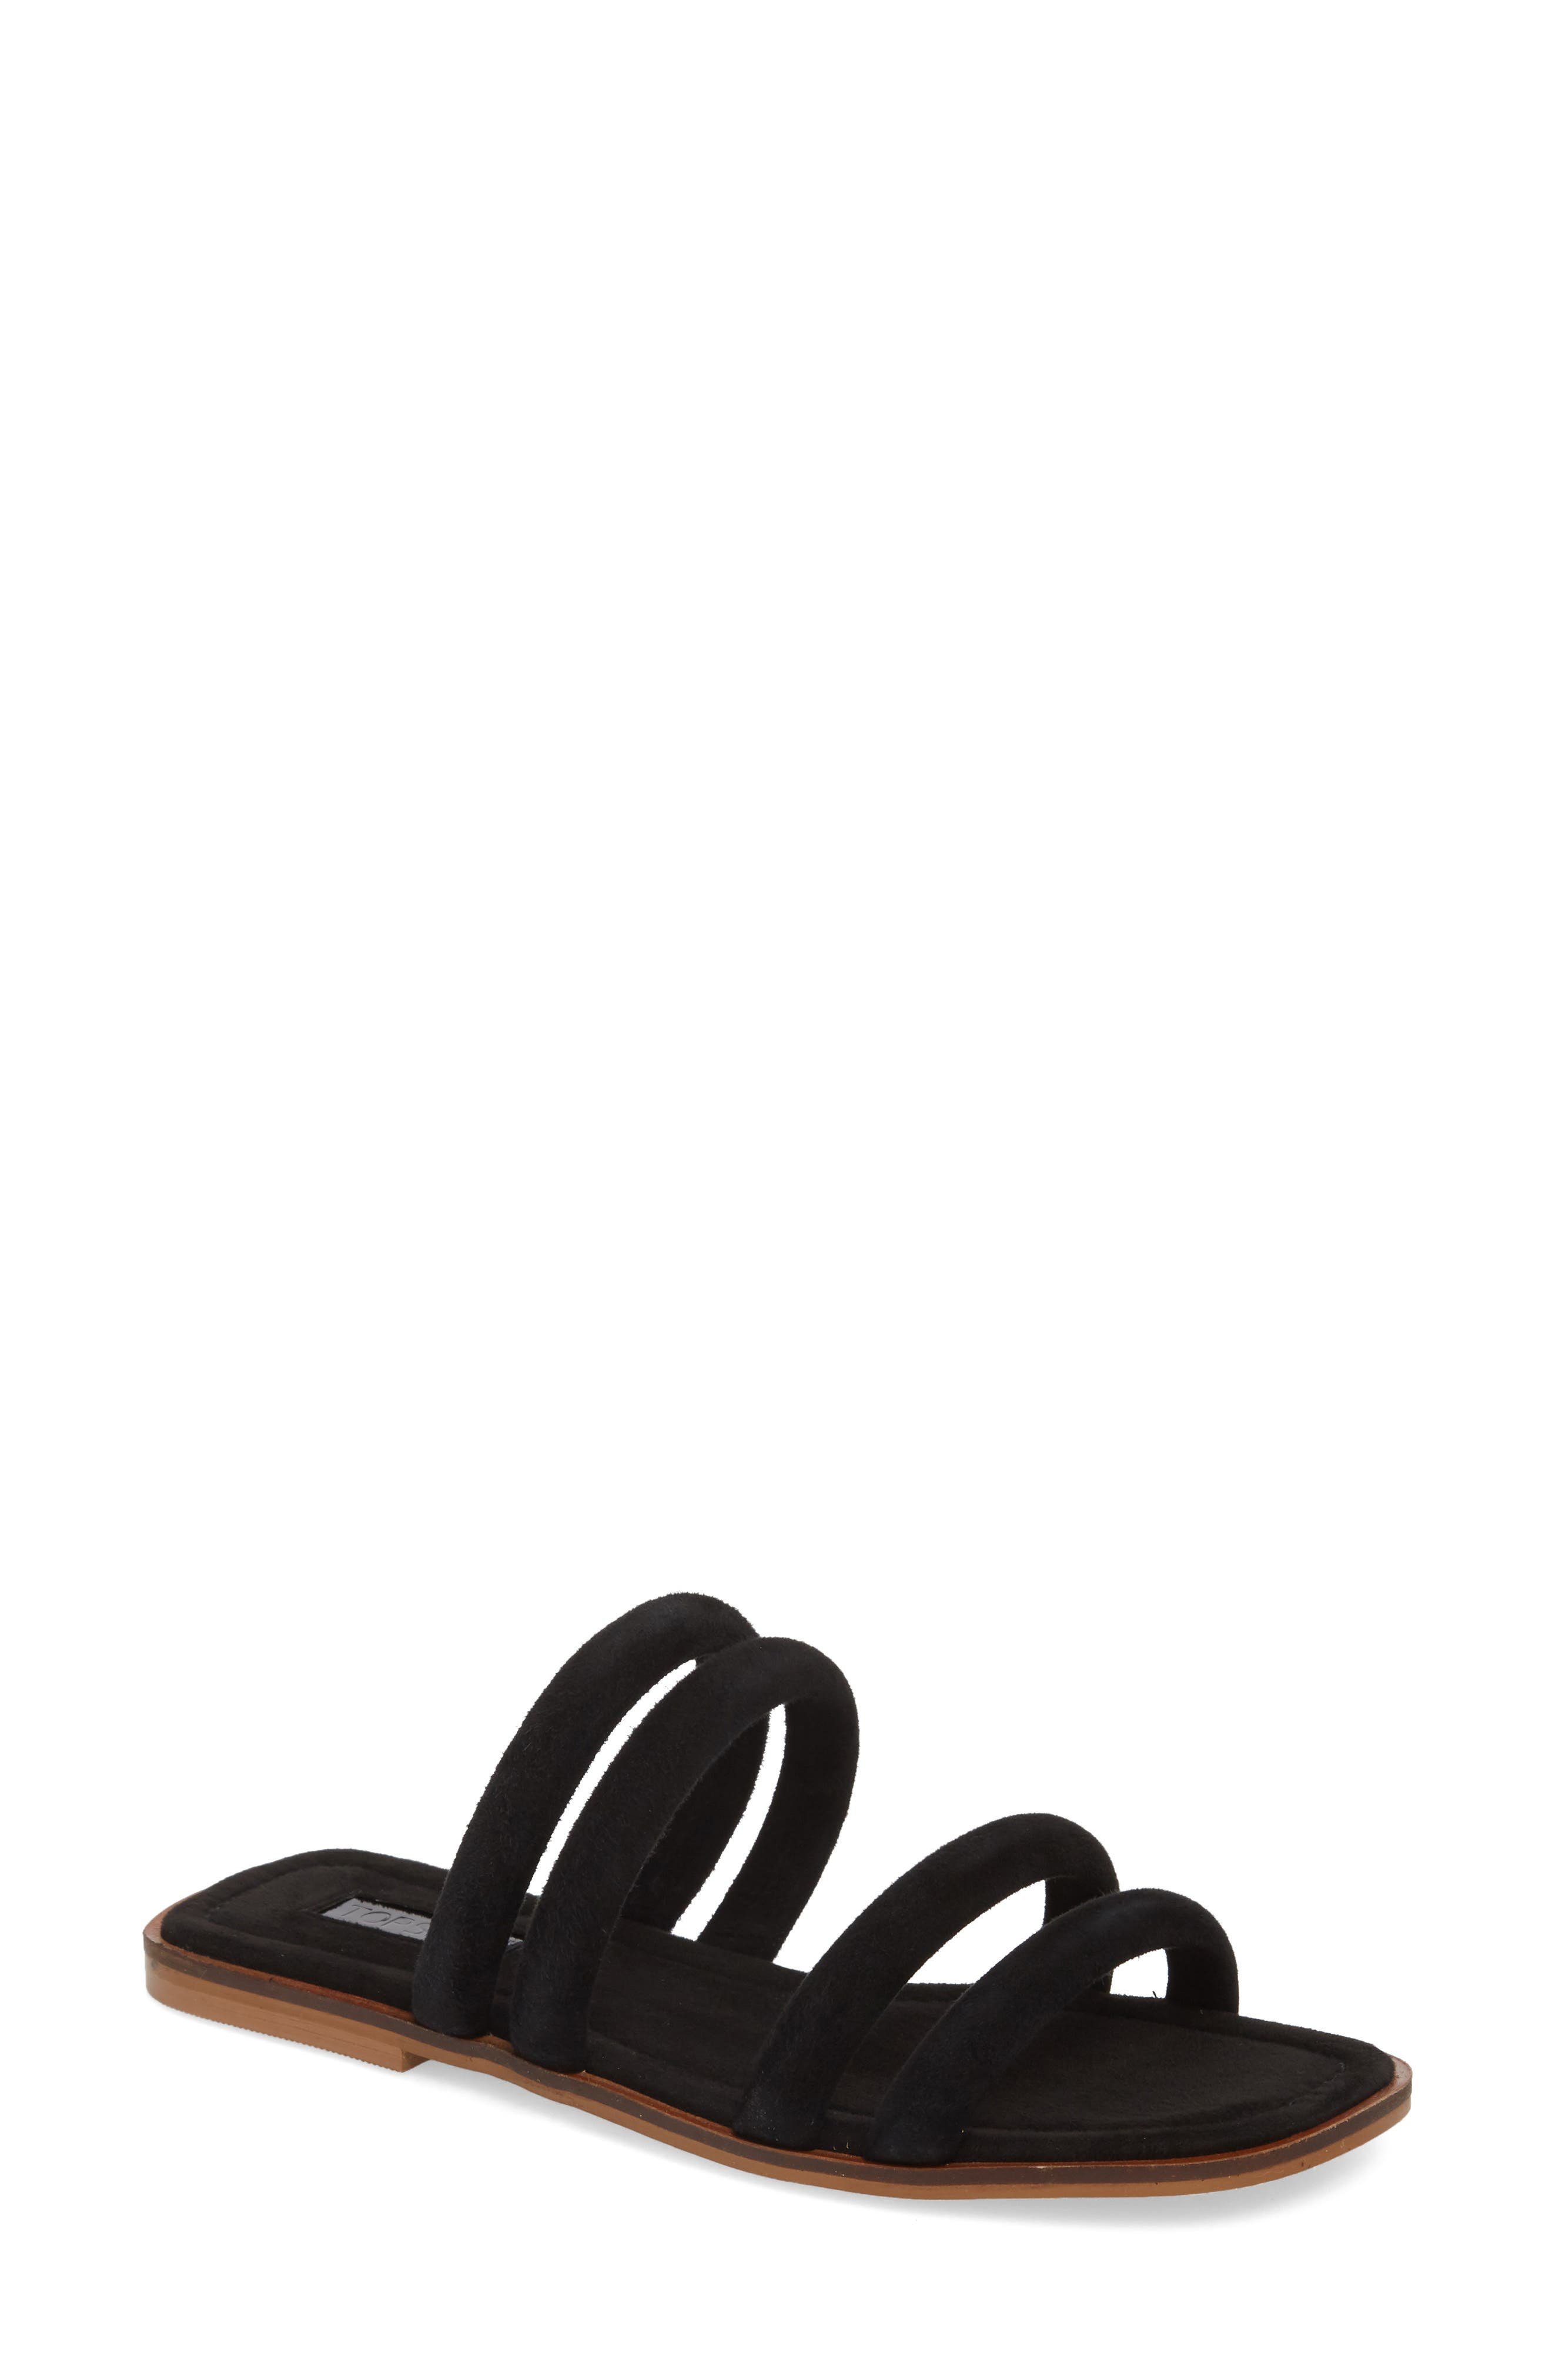 Fever Strappy Sandal,                             Main thumbnail 1, color,                             001